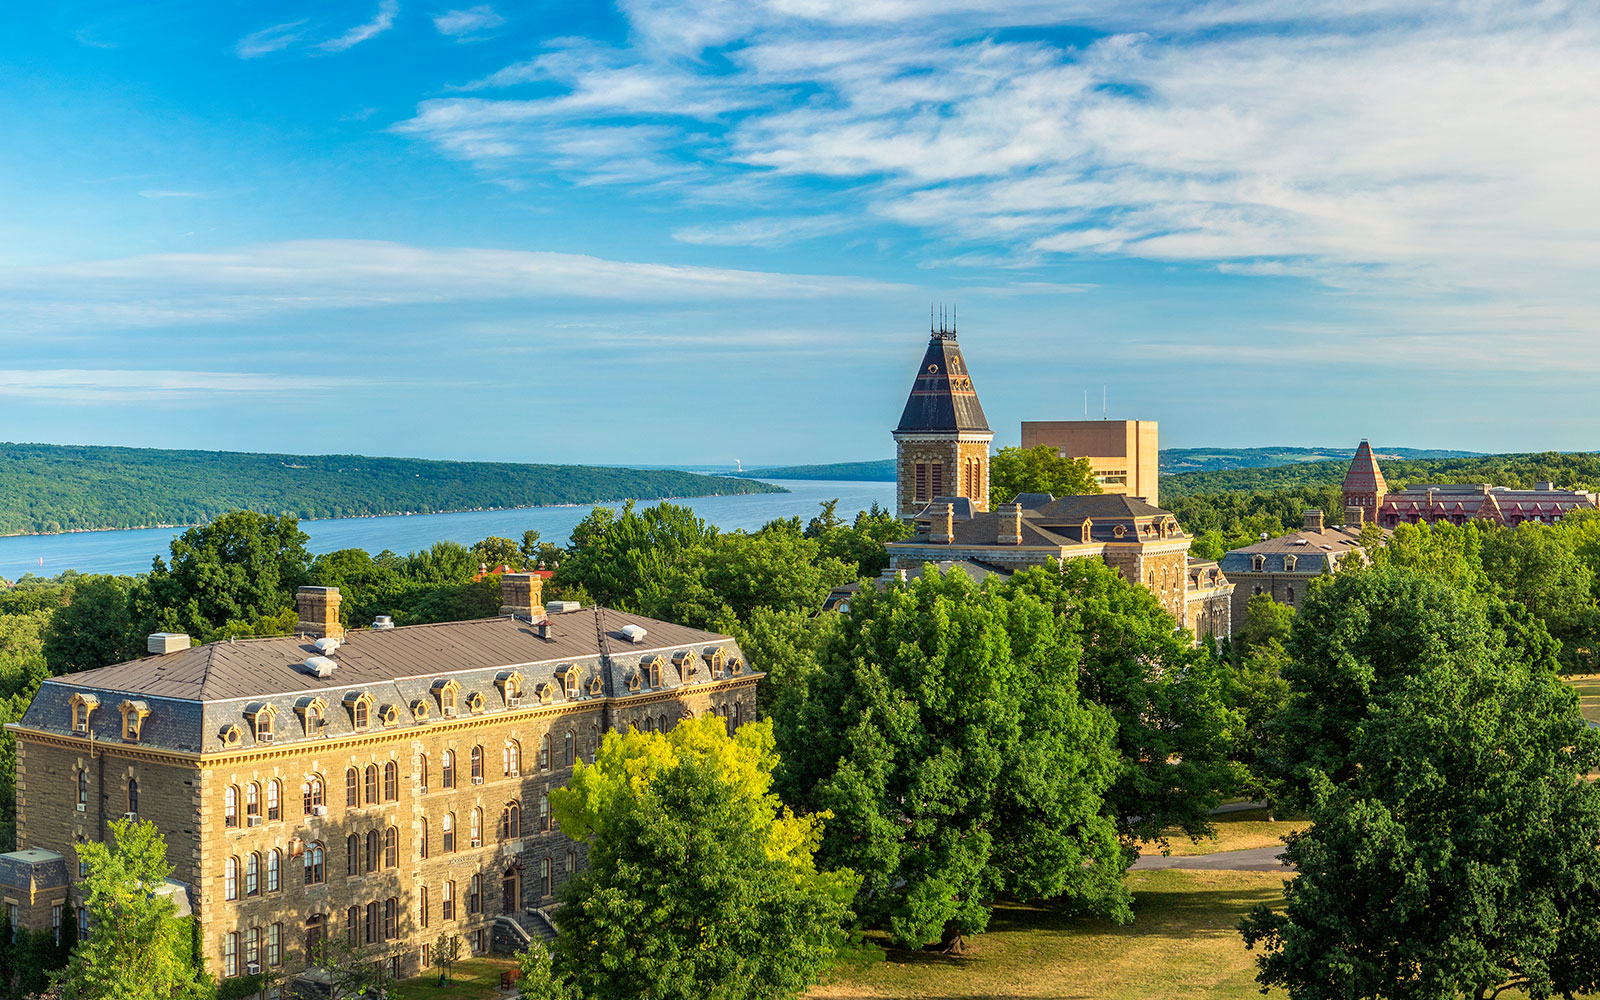 A beautiful view of Cornell.